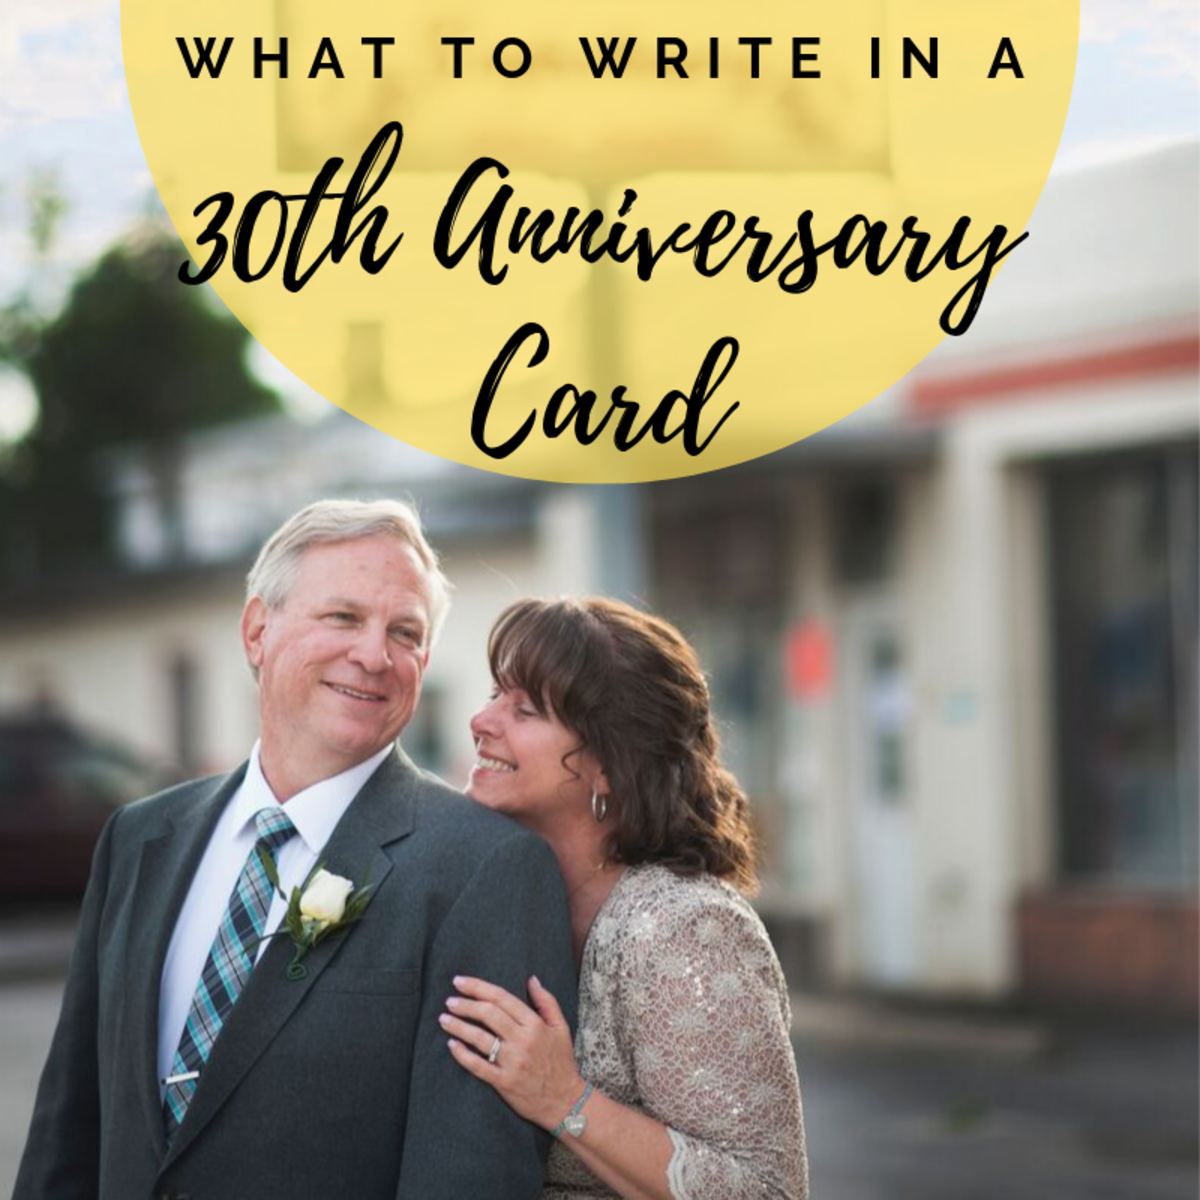 30 years of marriage is a huge milestone! Whether you're writing to your spouse or to a happy couple, make your message count.